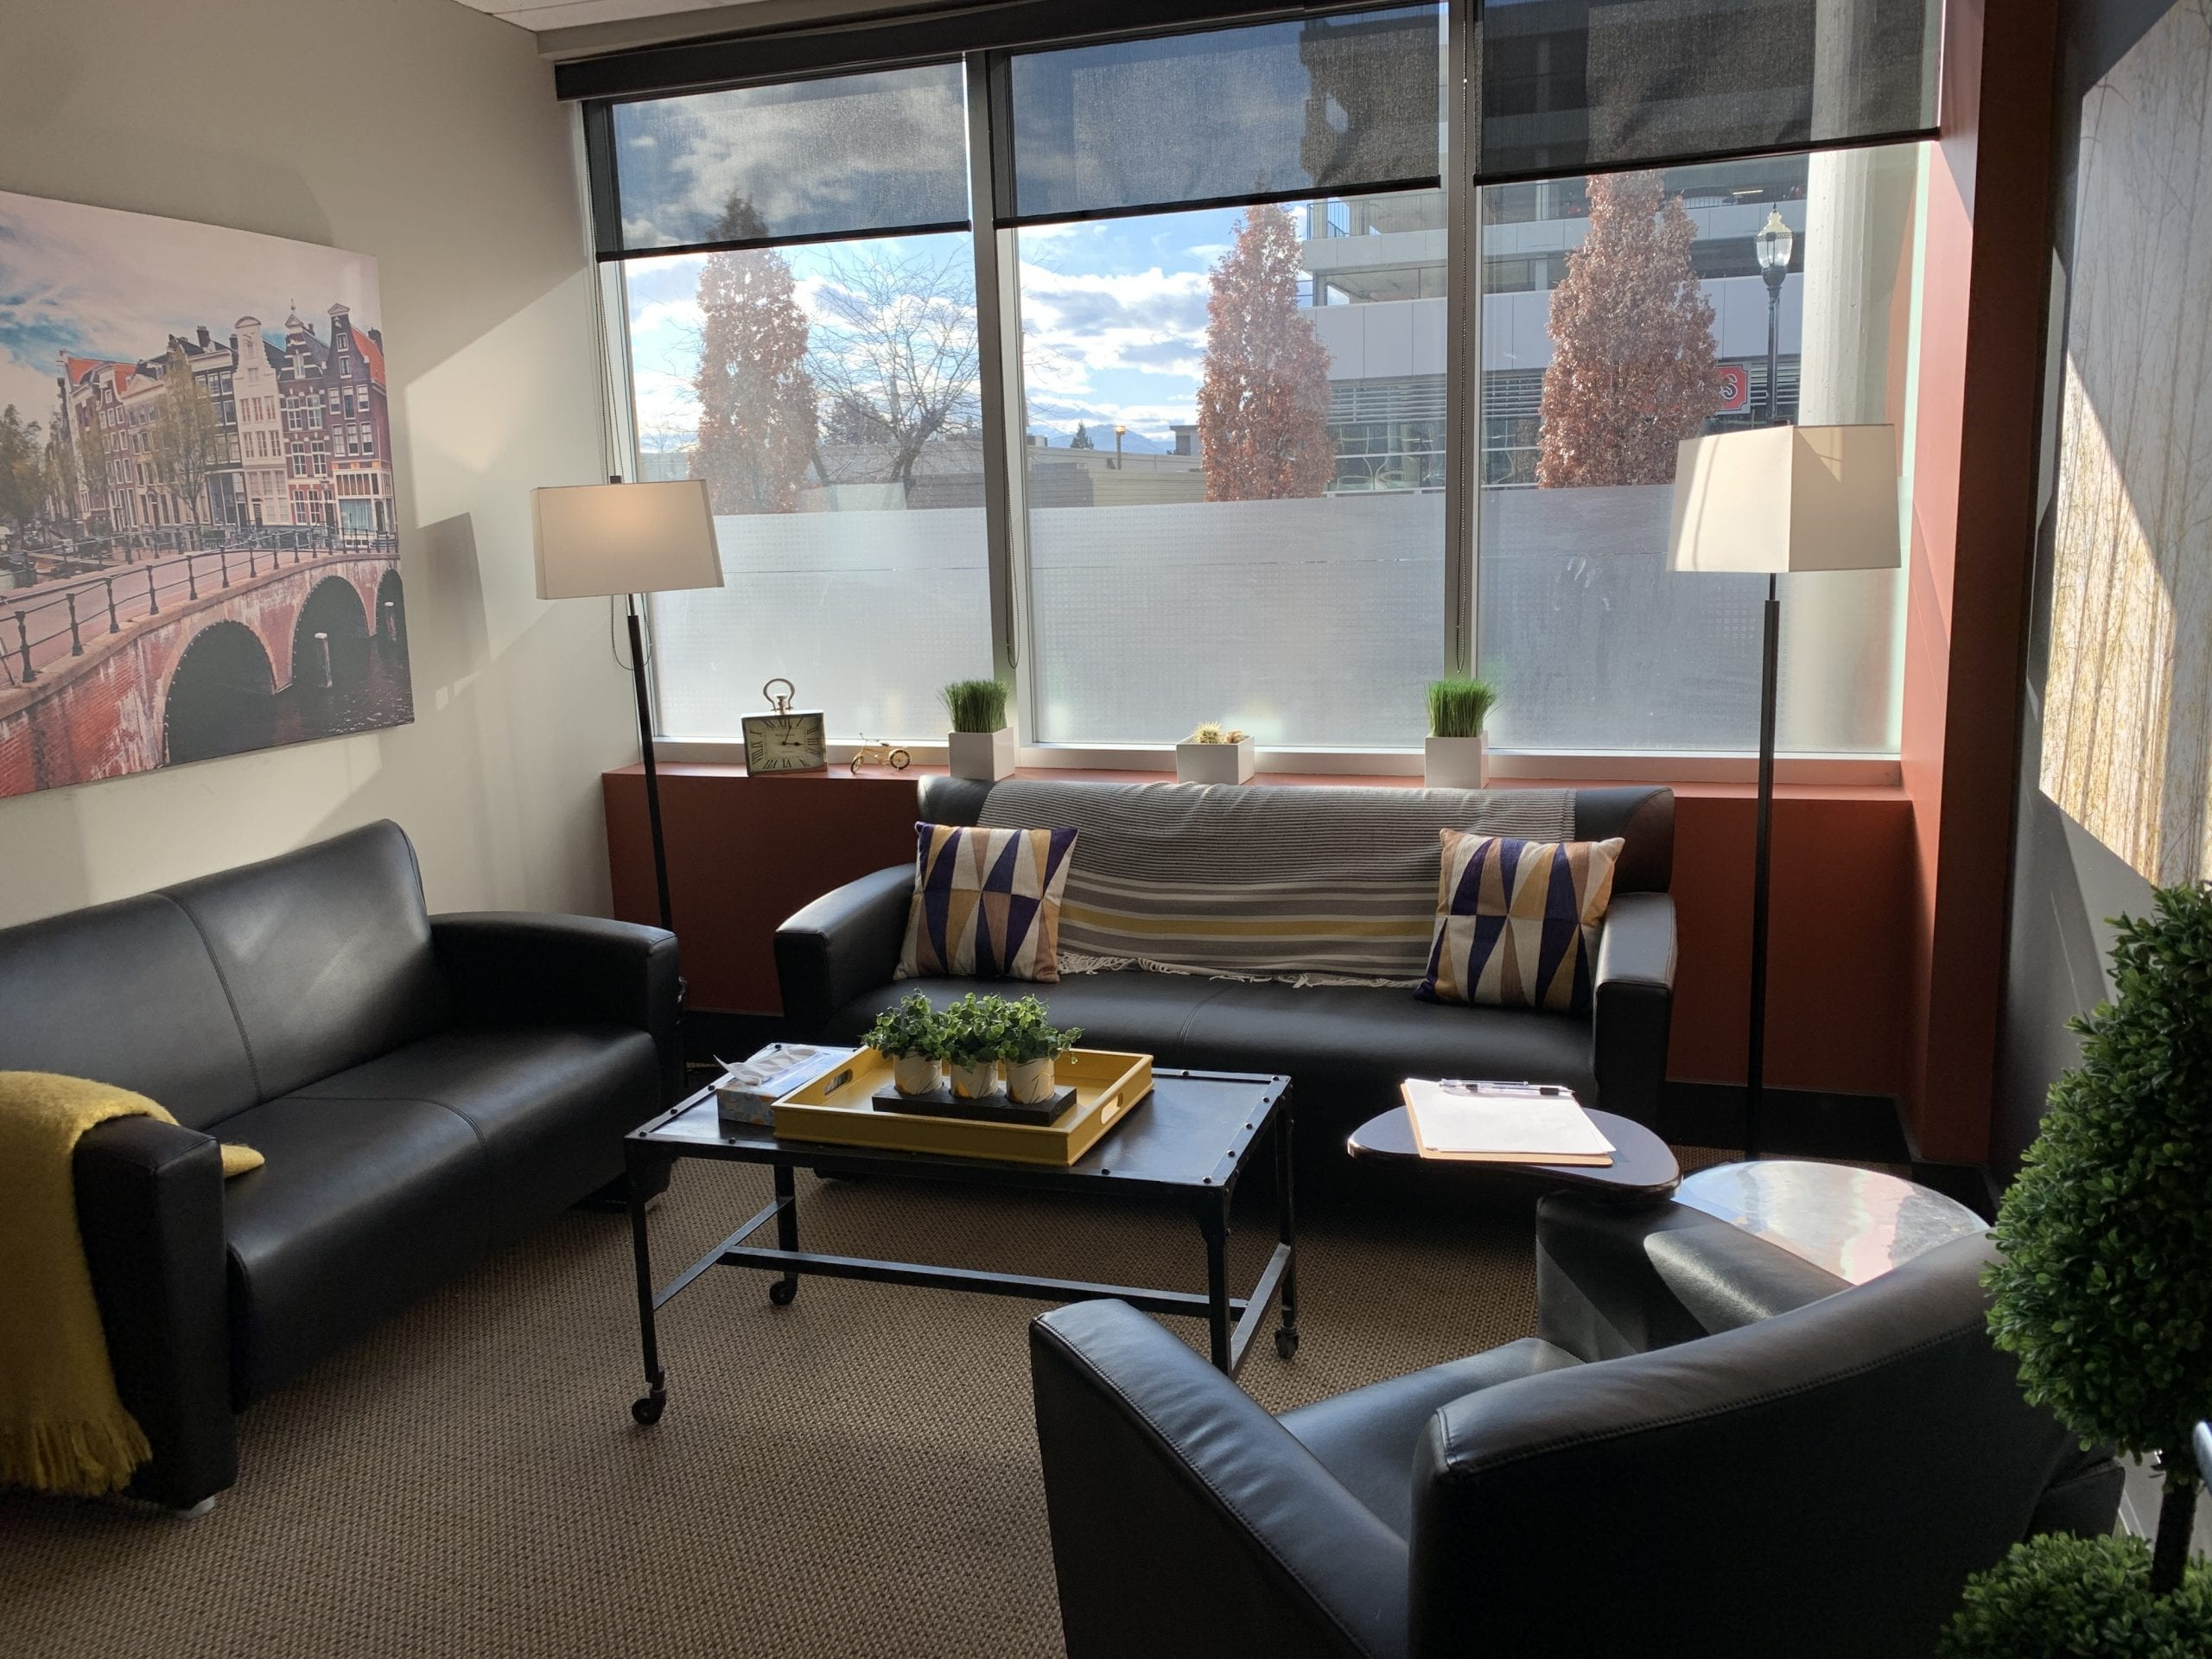 counselling-kelowna-counsellor-therapist-anxiety-healing-calm-counselling-chairs-safe-atmosphere-calm-calming-anxiety-healing-selfcare